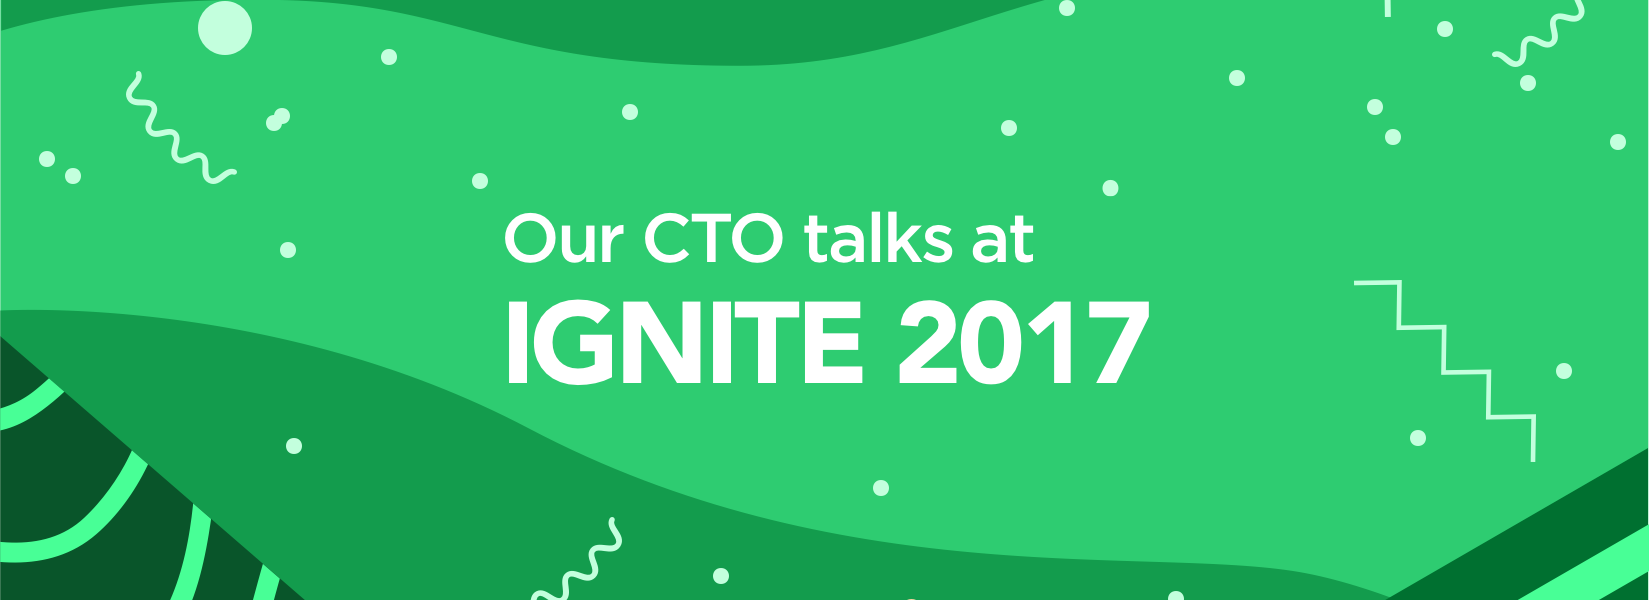 Our CTO talks at Ignite 2017